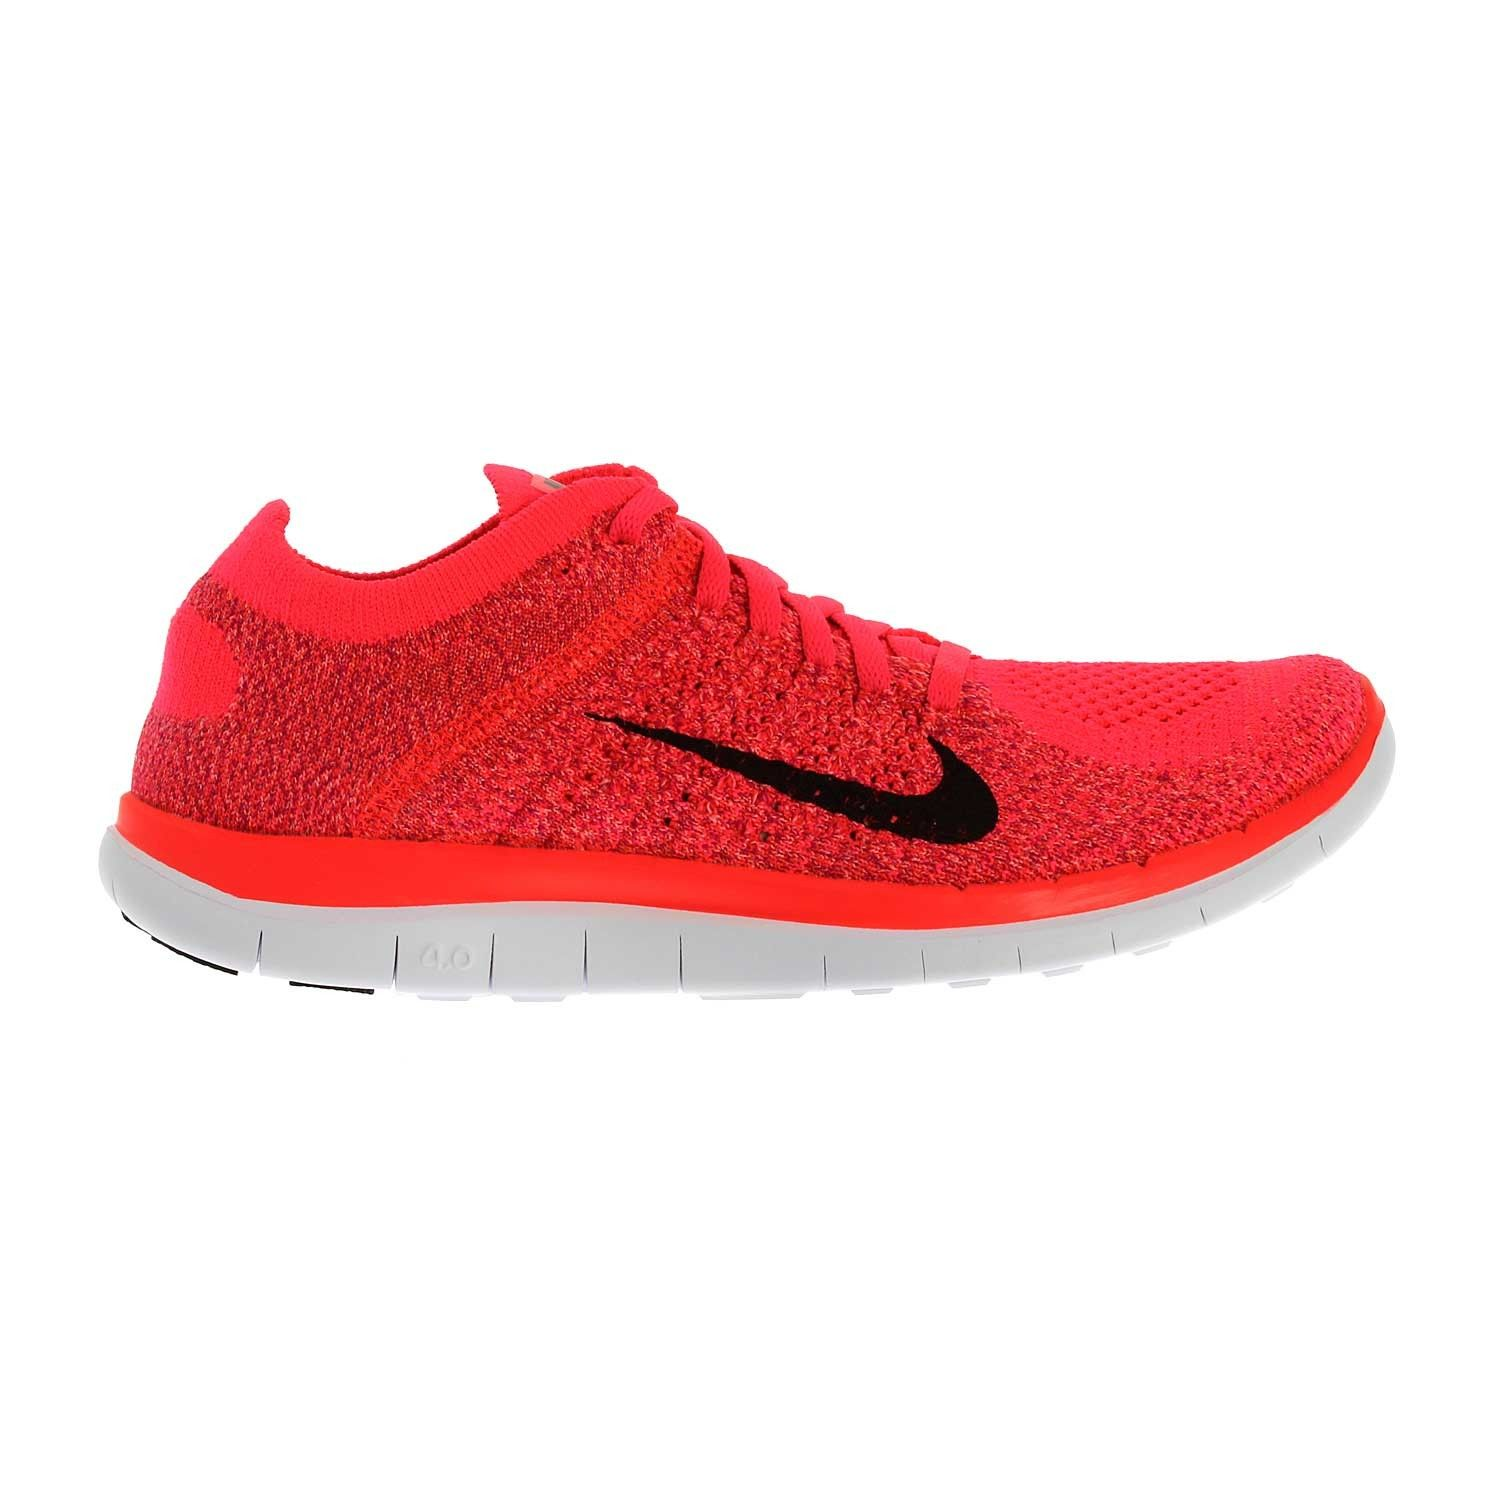 Nike Free 4.0 Flyknit (631050 604) | Running Shoes [Women's]